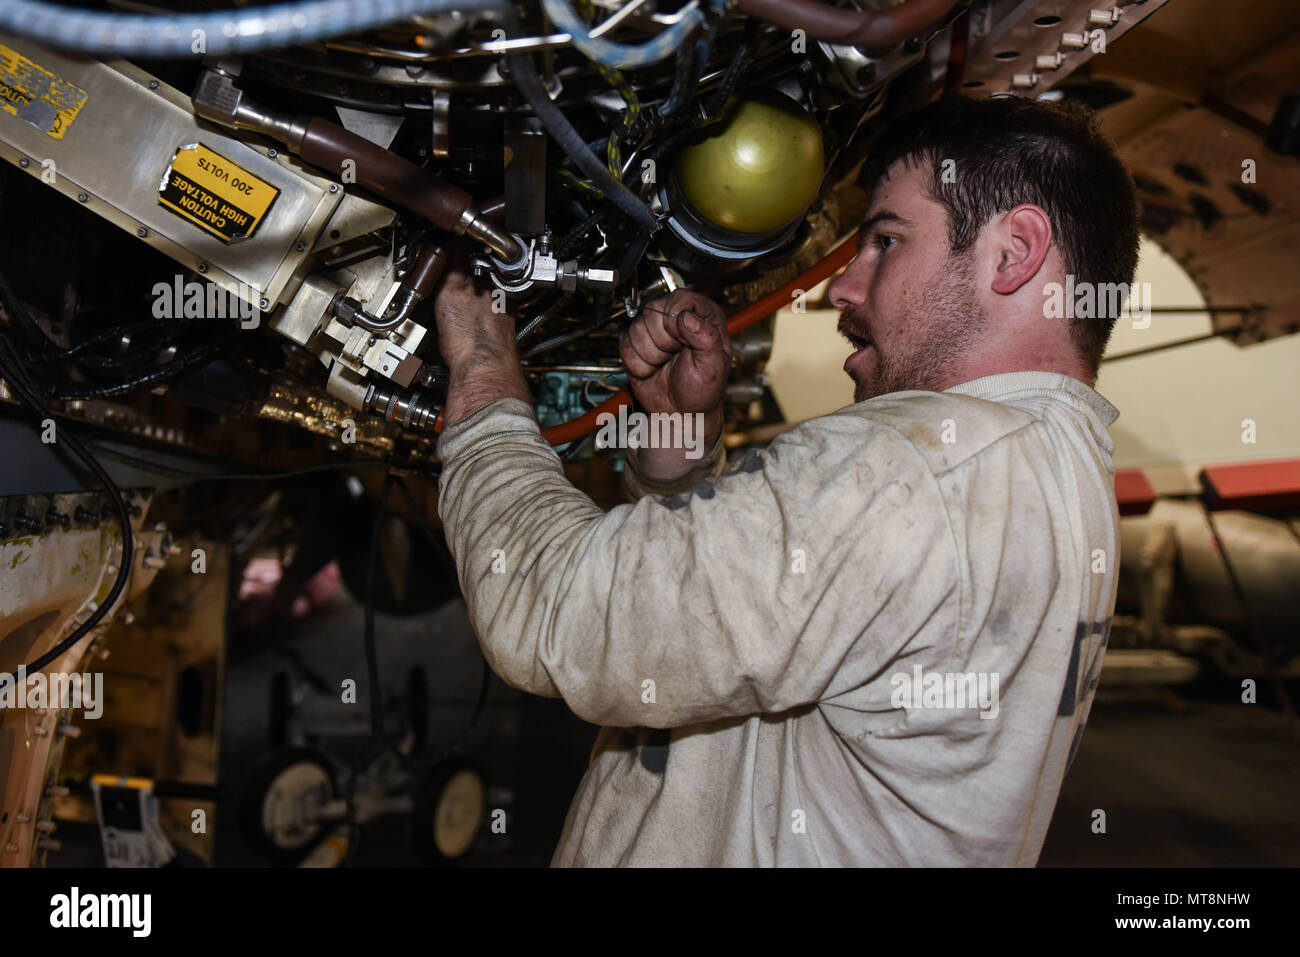 180515 N Dz642 0016 Mediterranean Sea May 15 2018 Aviation Aircraft Wiring Harness Machinists Mate 2nd Class Kyle Radley Assigned To The Red Rippers Of Strike Fighter Squadron Vfa 11 Installs A Wire On An